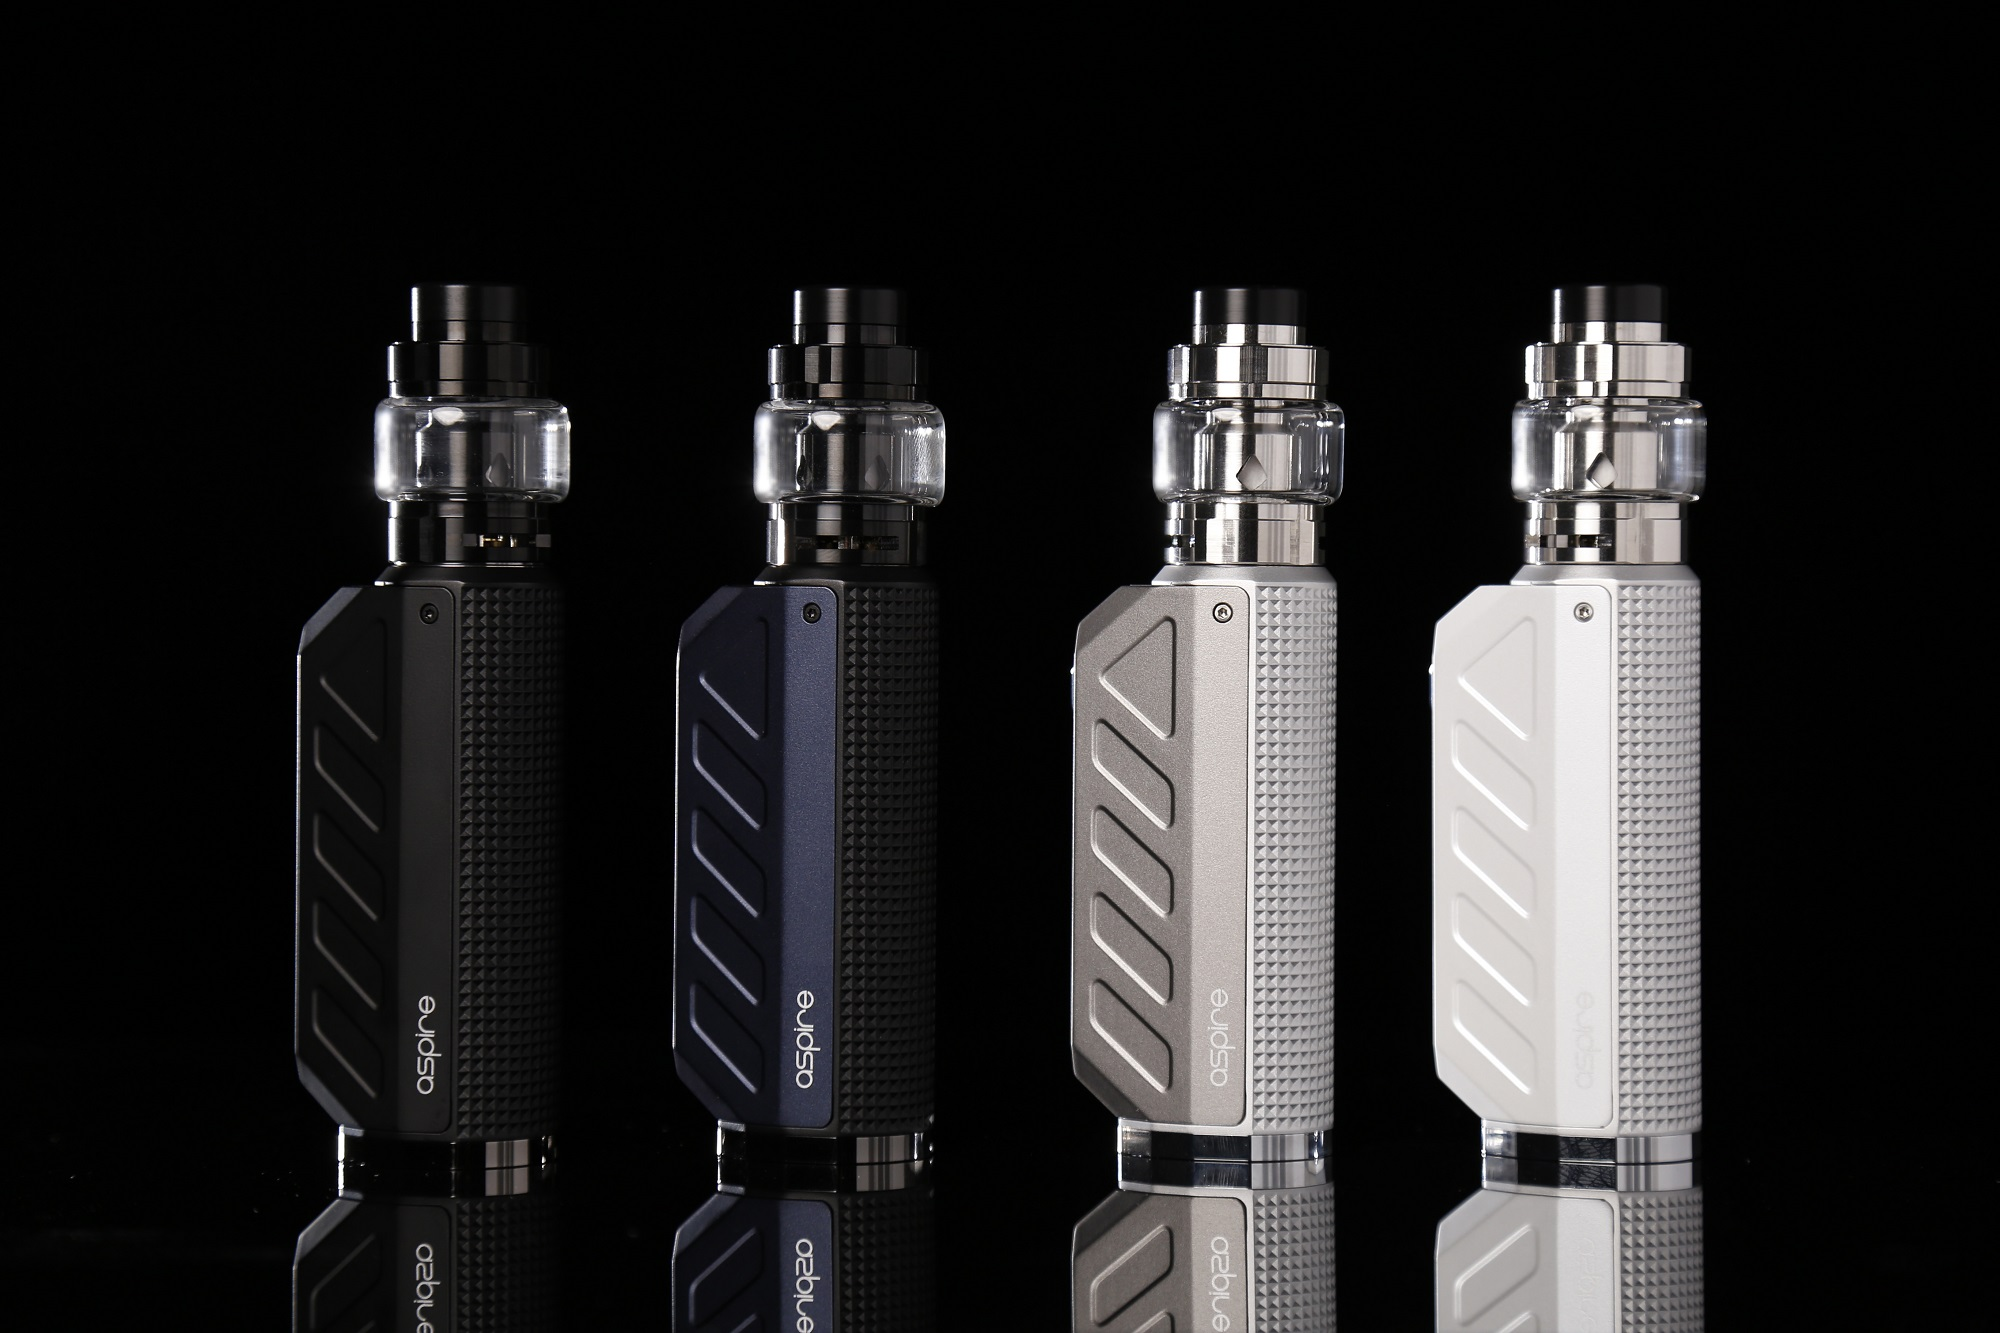 Aspire Deco Kit in four colors: black, navy, gray and pearl.